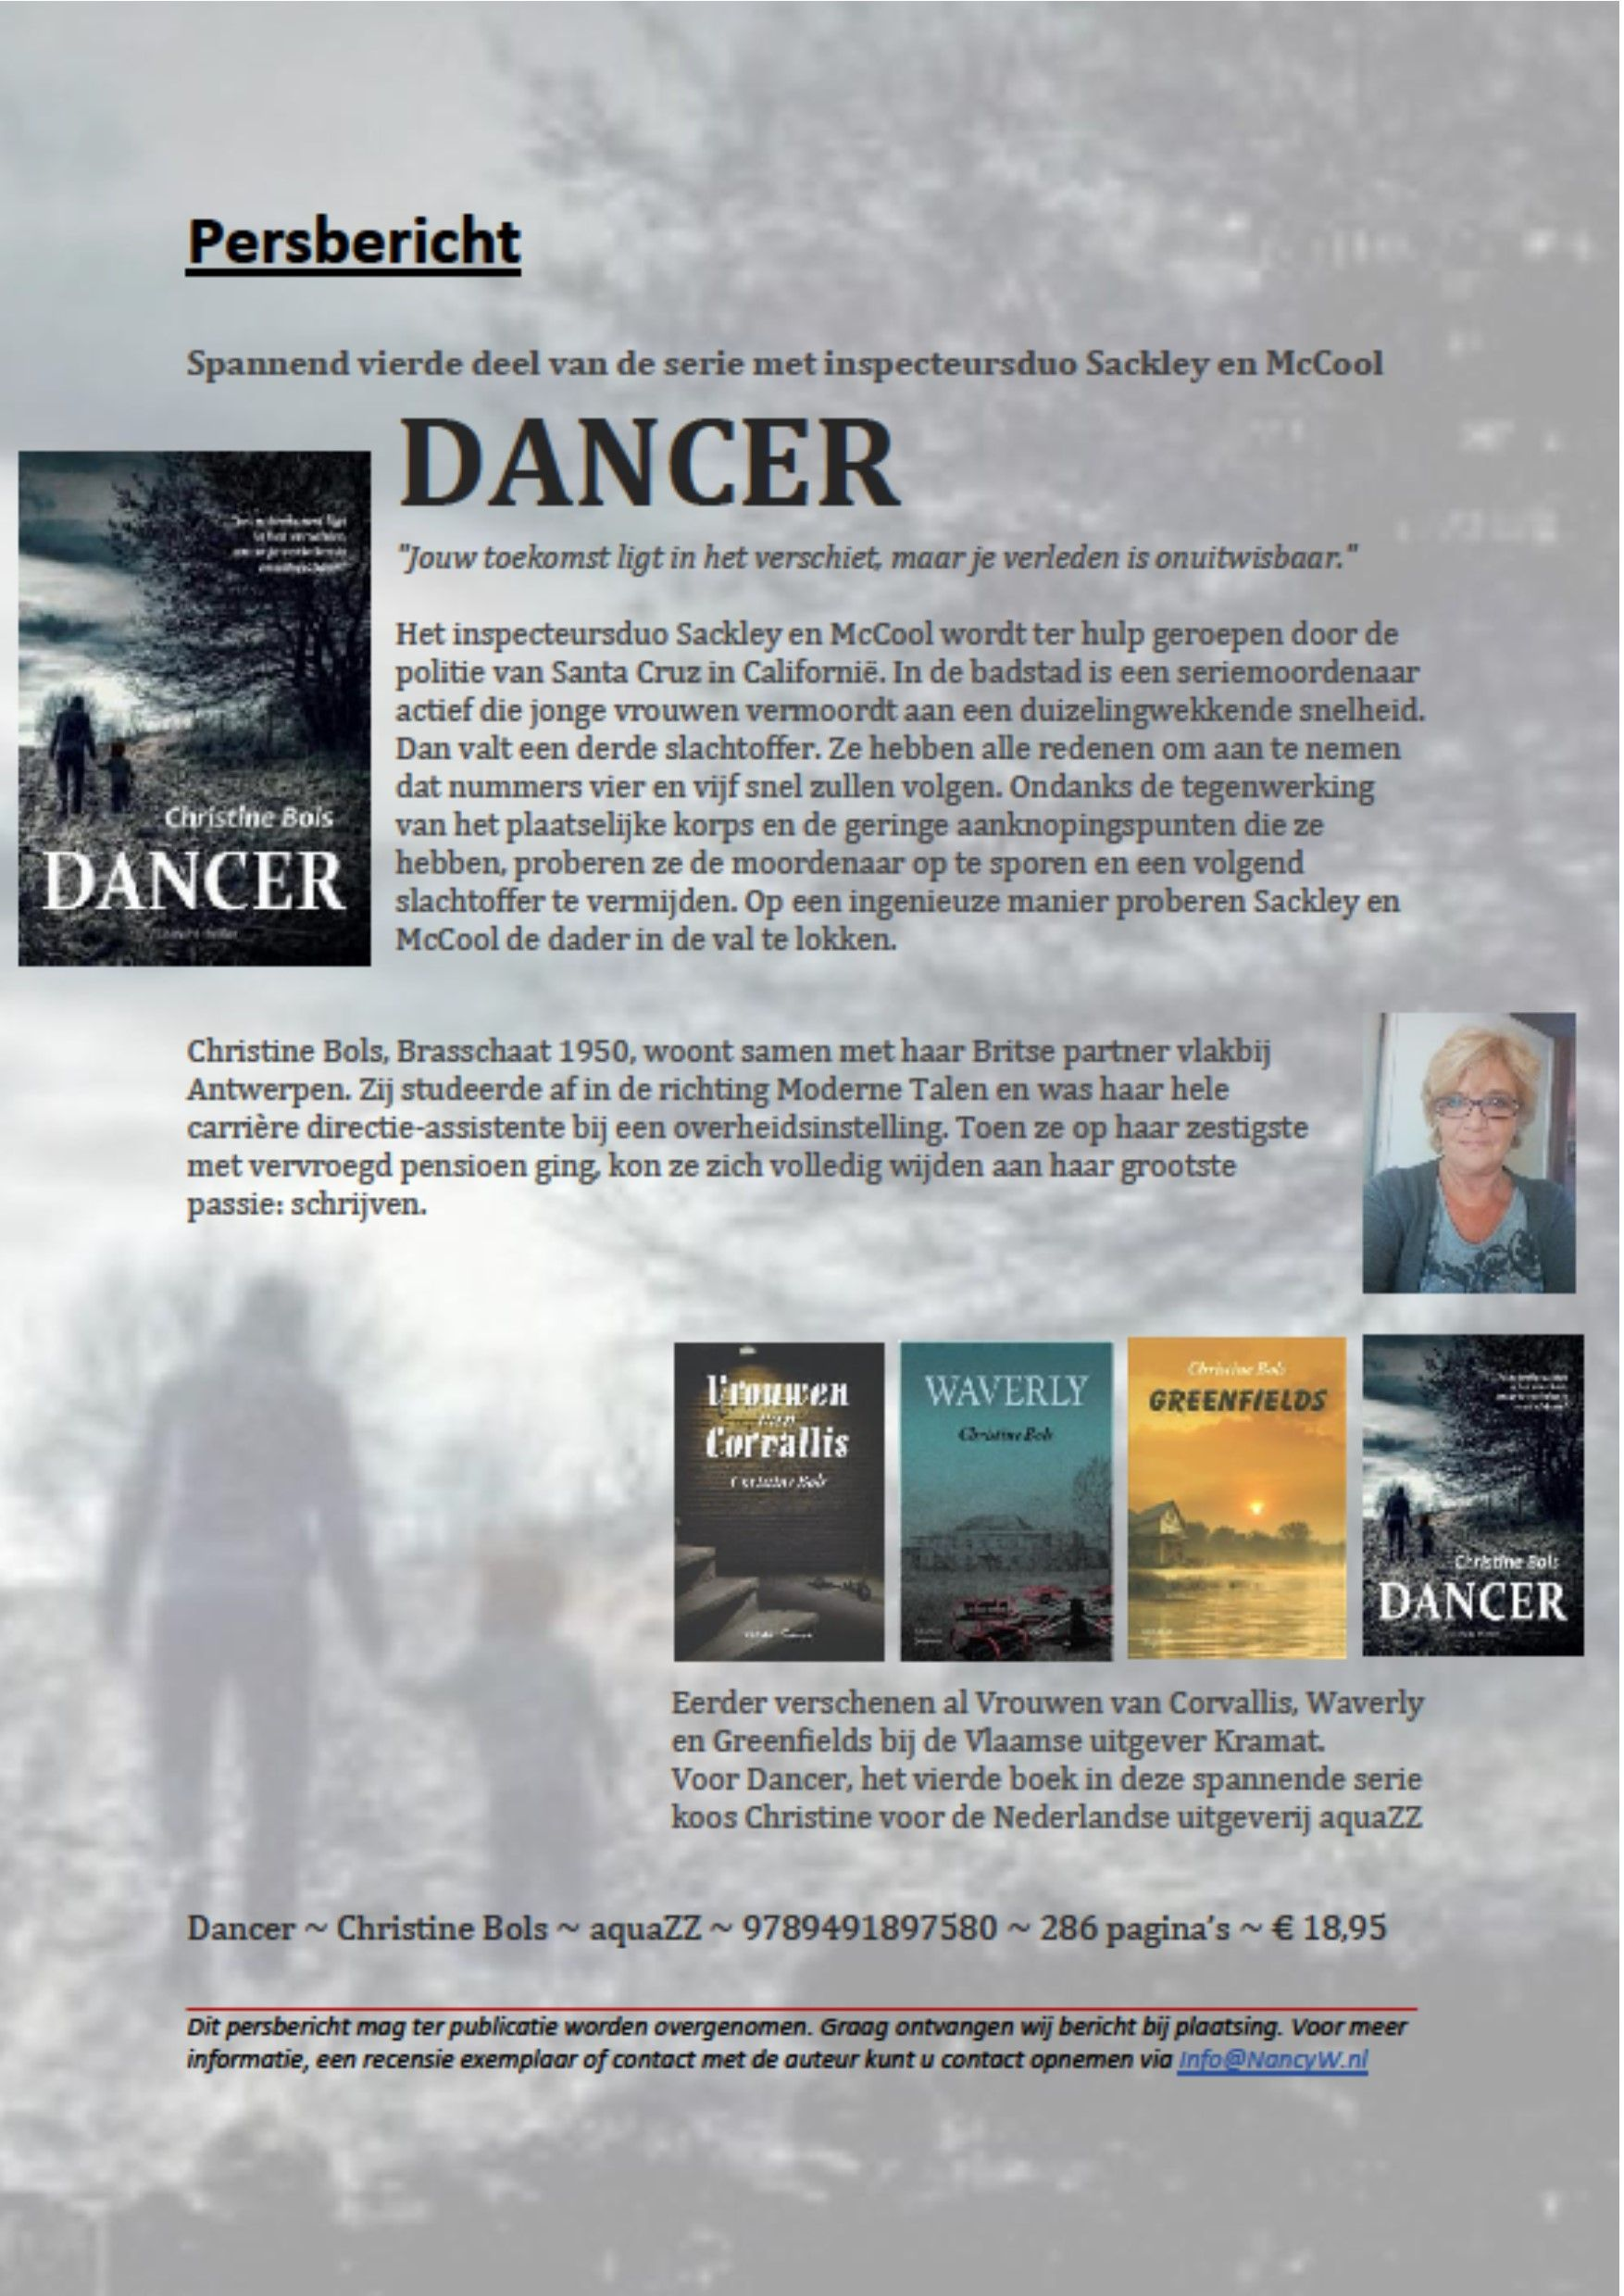 Persbericht Dancer  - Christine Bols